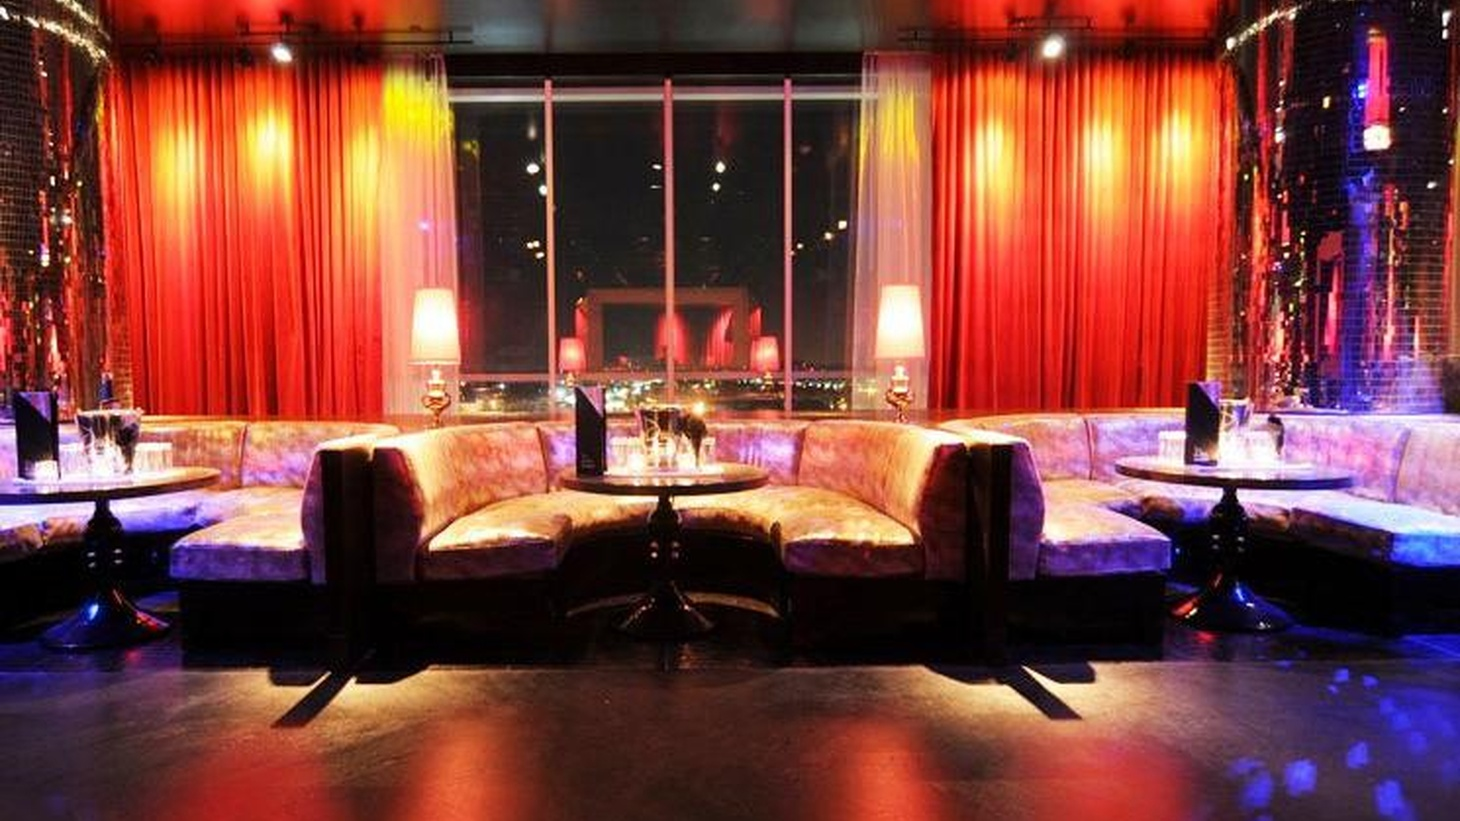 """Victor Drai, back in LA with a glam new namesake club, on top of the W Hotel, says you can't have a good nightclub without good design. We speak with Drai and young club designer Christian Schulz about LA clubs and how you go about designing a """"vibe."""" Also, Glendale looks for a curator of art for its recession-hit storefronts, and structural engineer Nabih Youssef on LA buildings and their readiness for a Chile-scale earthquake."""